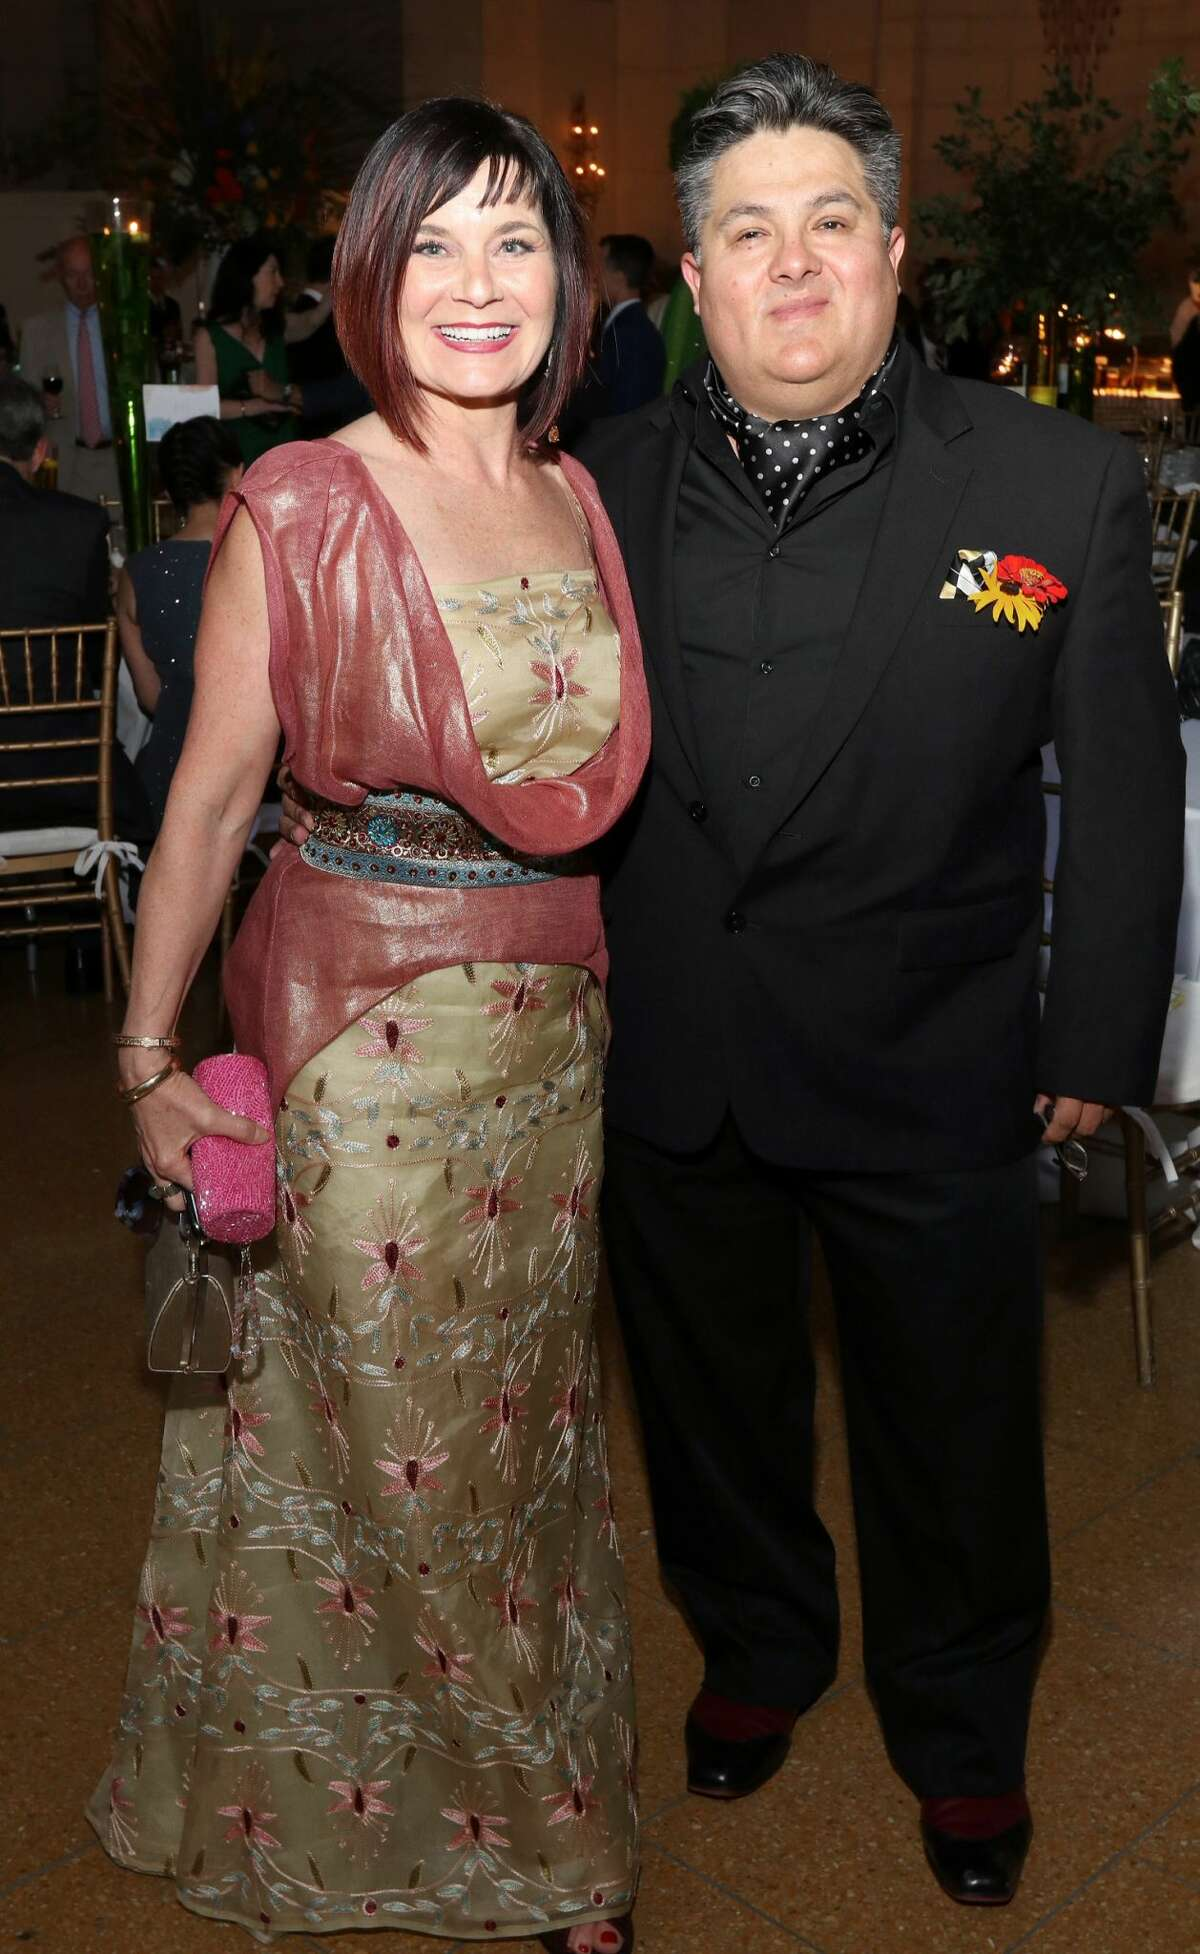 Were you Seen at the annual Ballet Gala, the primary fundraiser for the New York City Ballet summer residency, held at the Hall of Springs and on the lawn at SPAC in Saratoga Springs on Saturday, July 21, 2018?